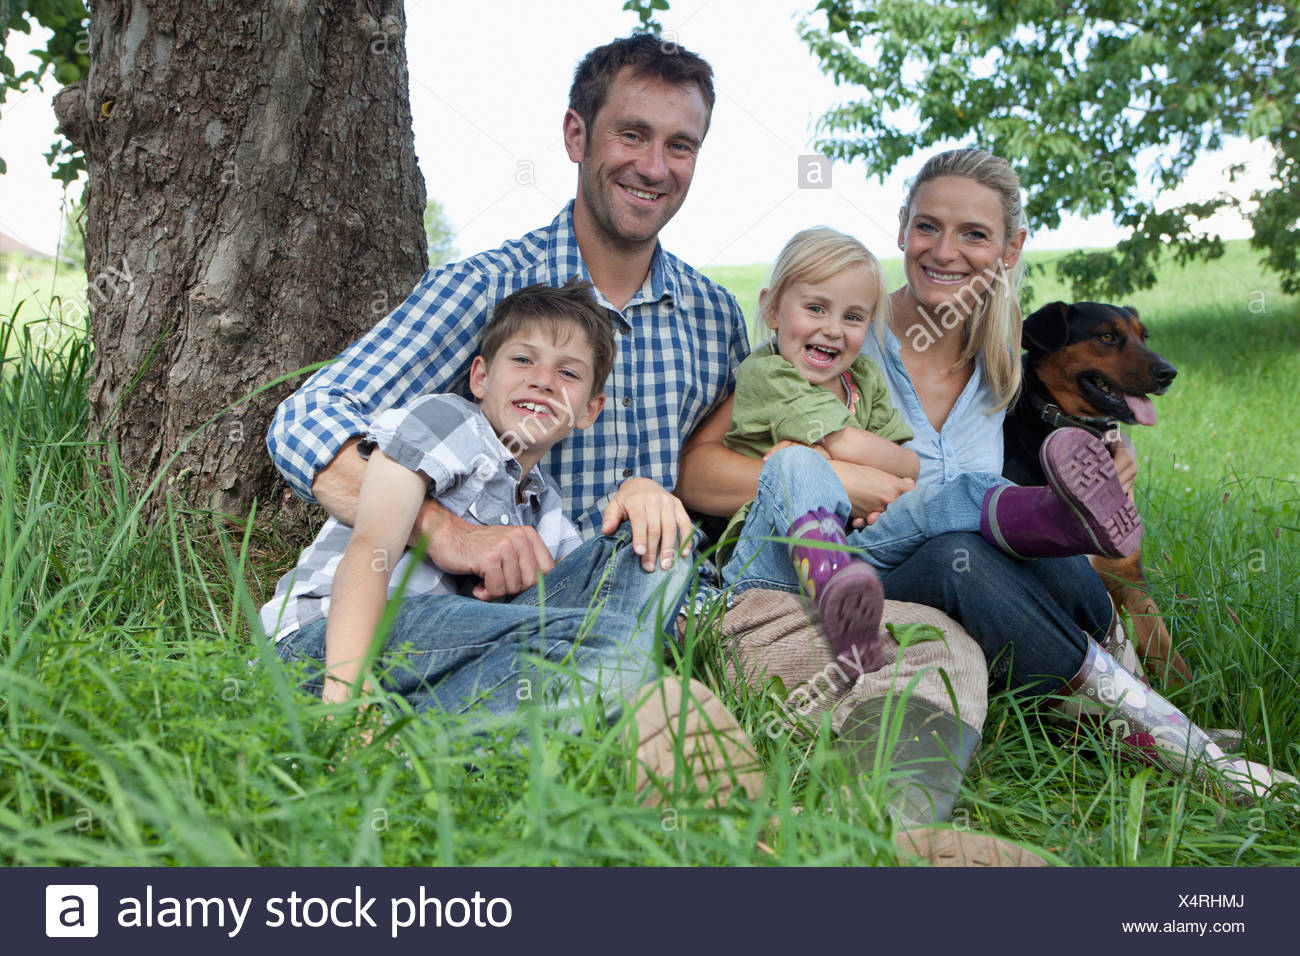 Germany, Bavaria, Altenthann, Family with dog under tree, smiling, portrait - Stock Image